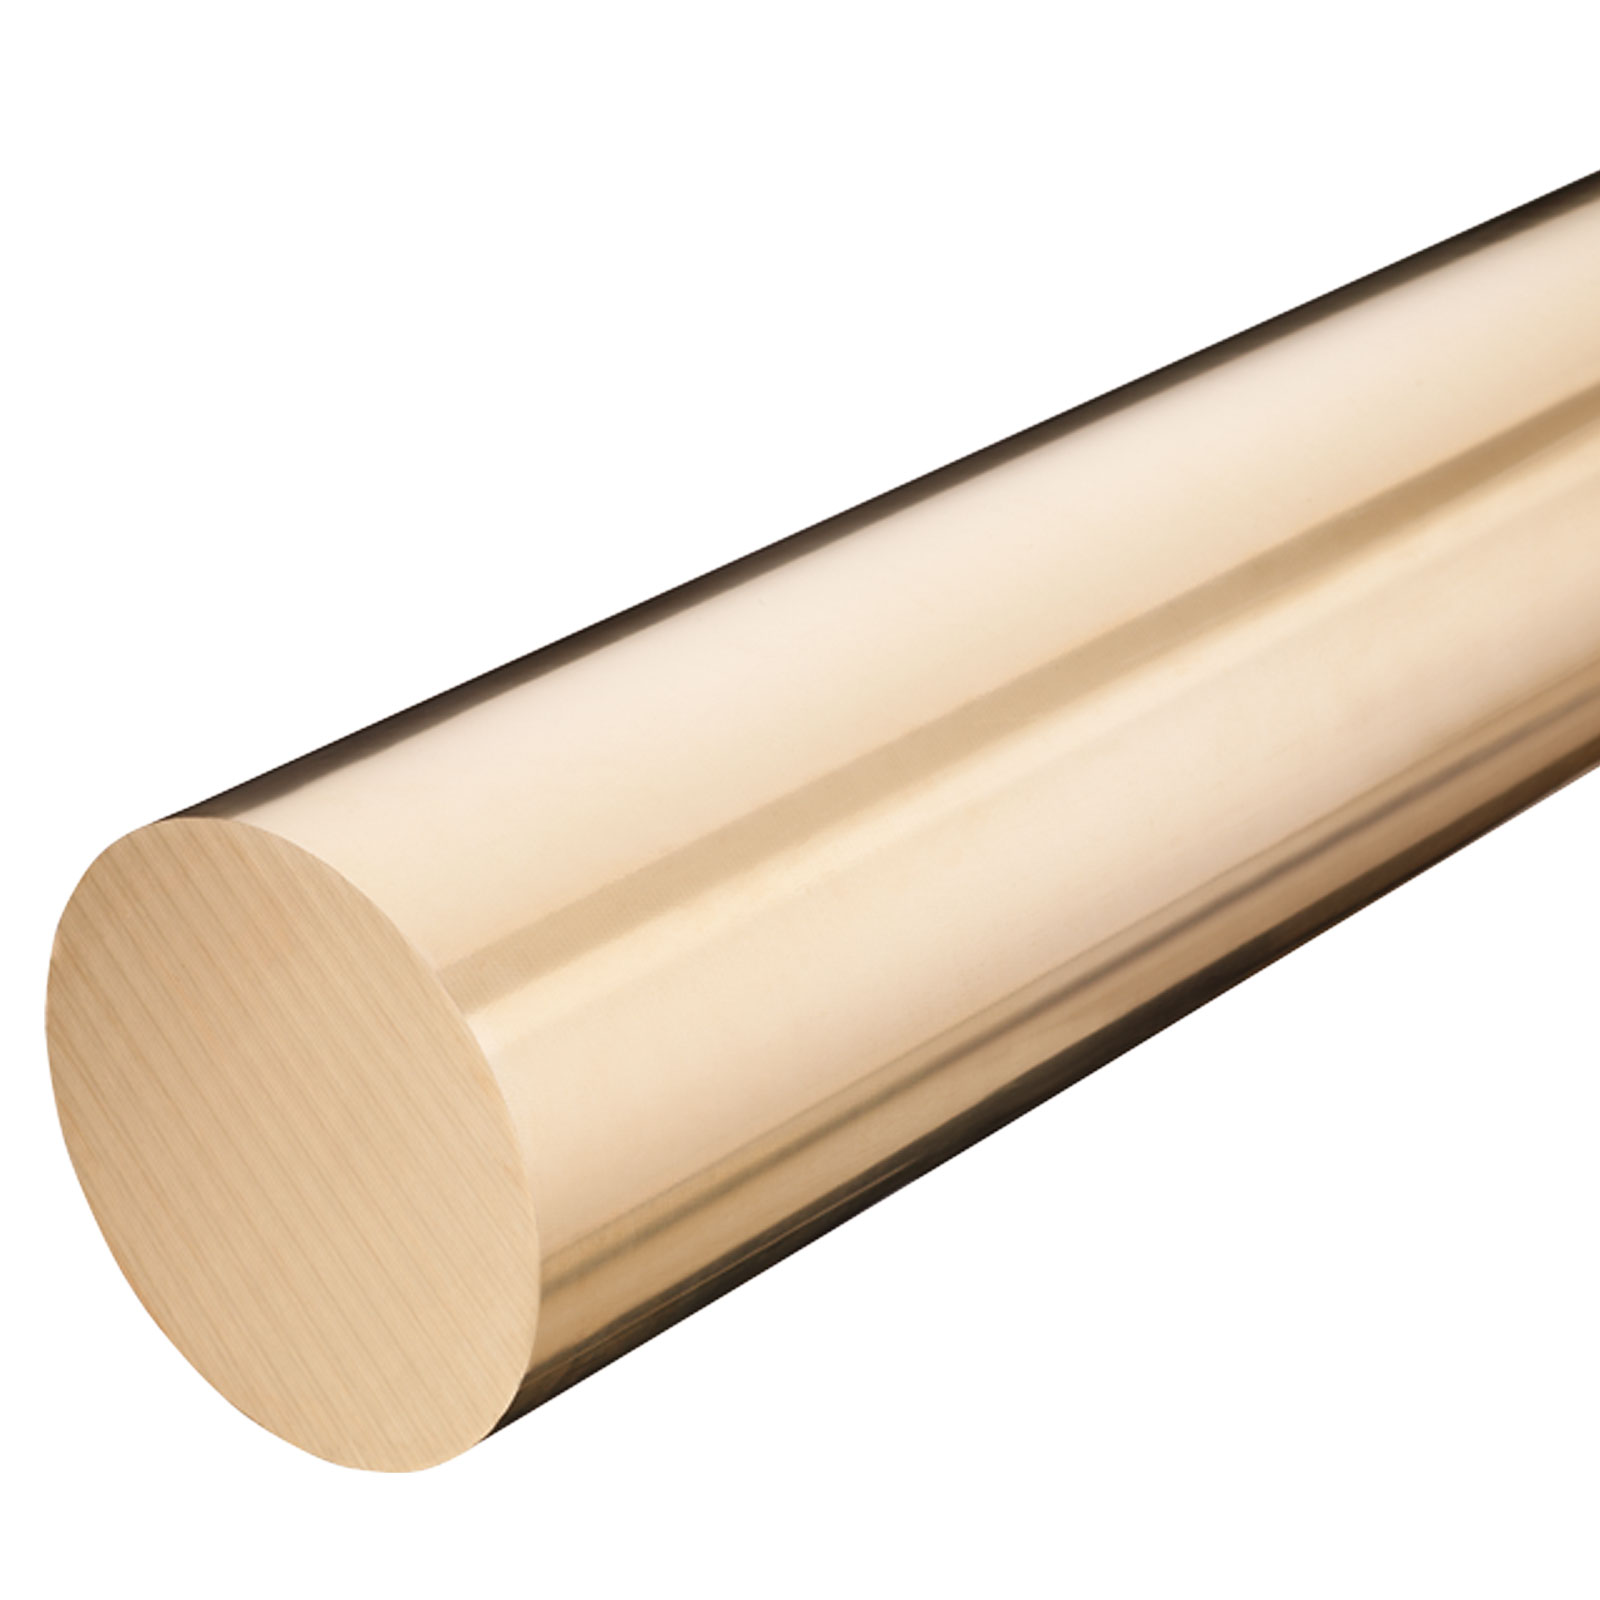 C63000 (AMS 4640) Nickel Aluminum Bronze